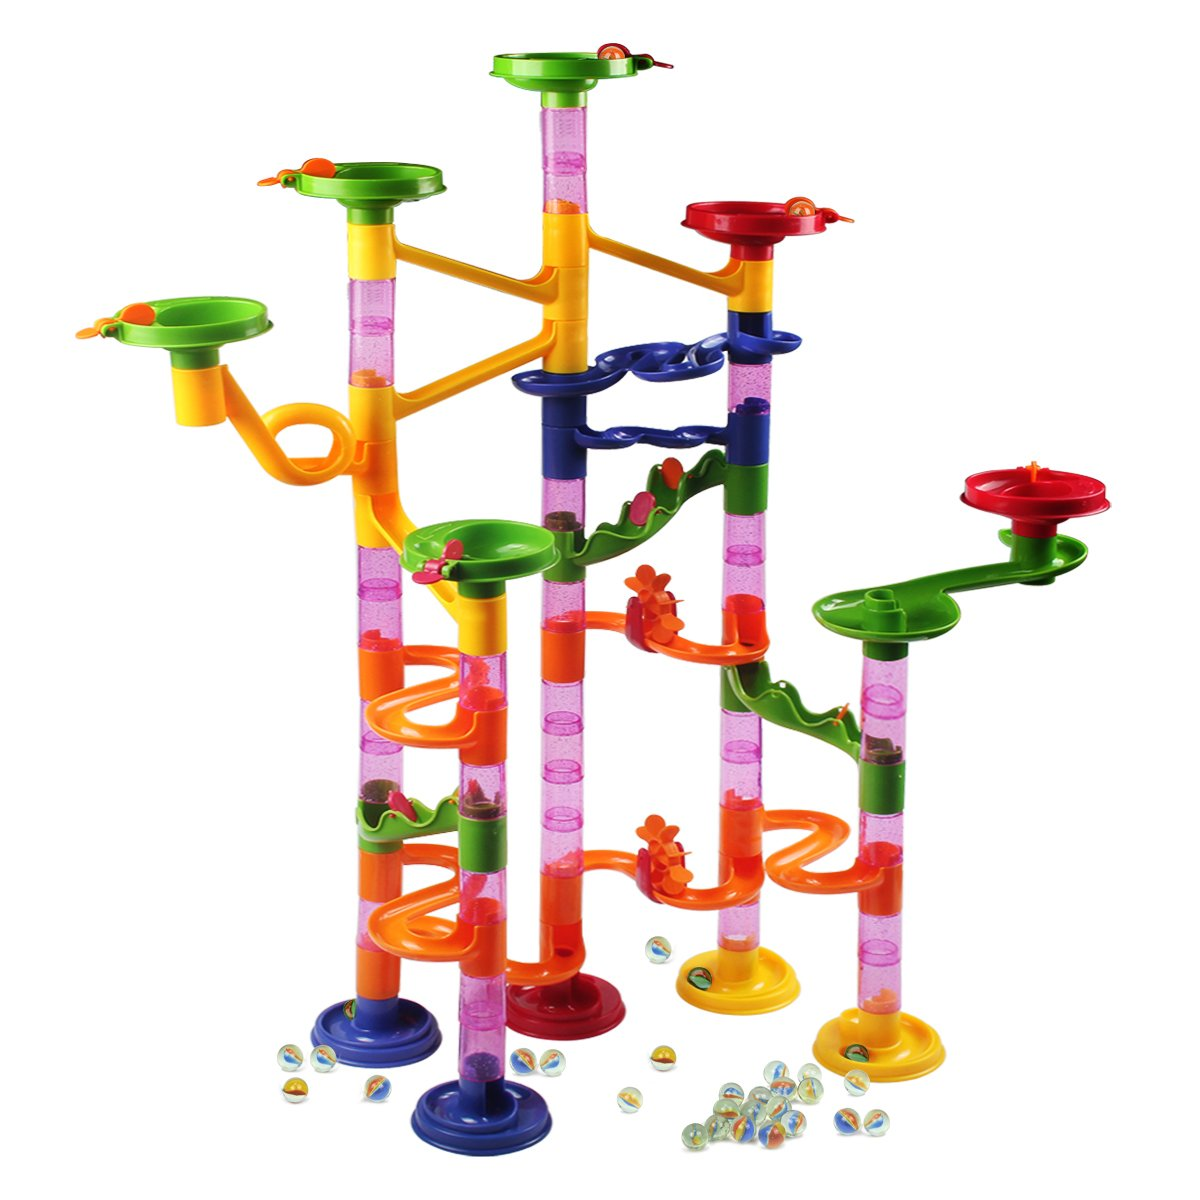 Marble Runs Toy Set,AMOSTING Marble Run Railway Maze Toys Construction Child Building Blocks Toys with Glass Marbles,105 Pieces Ball Race Game Review